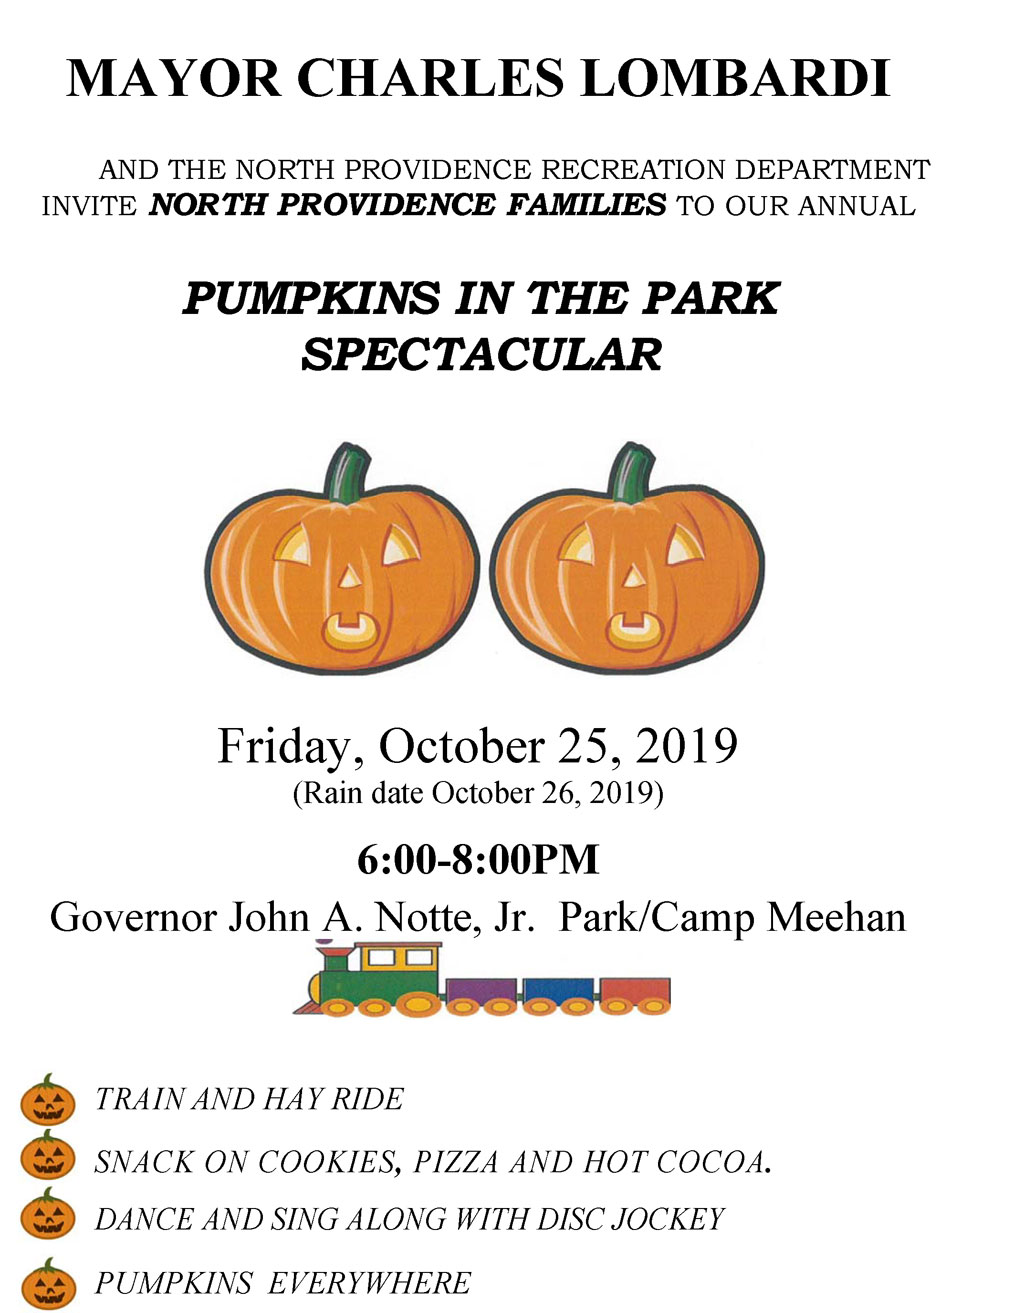 Pumpkins In The Park Spectacular - Friday, October 25, 2019